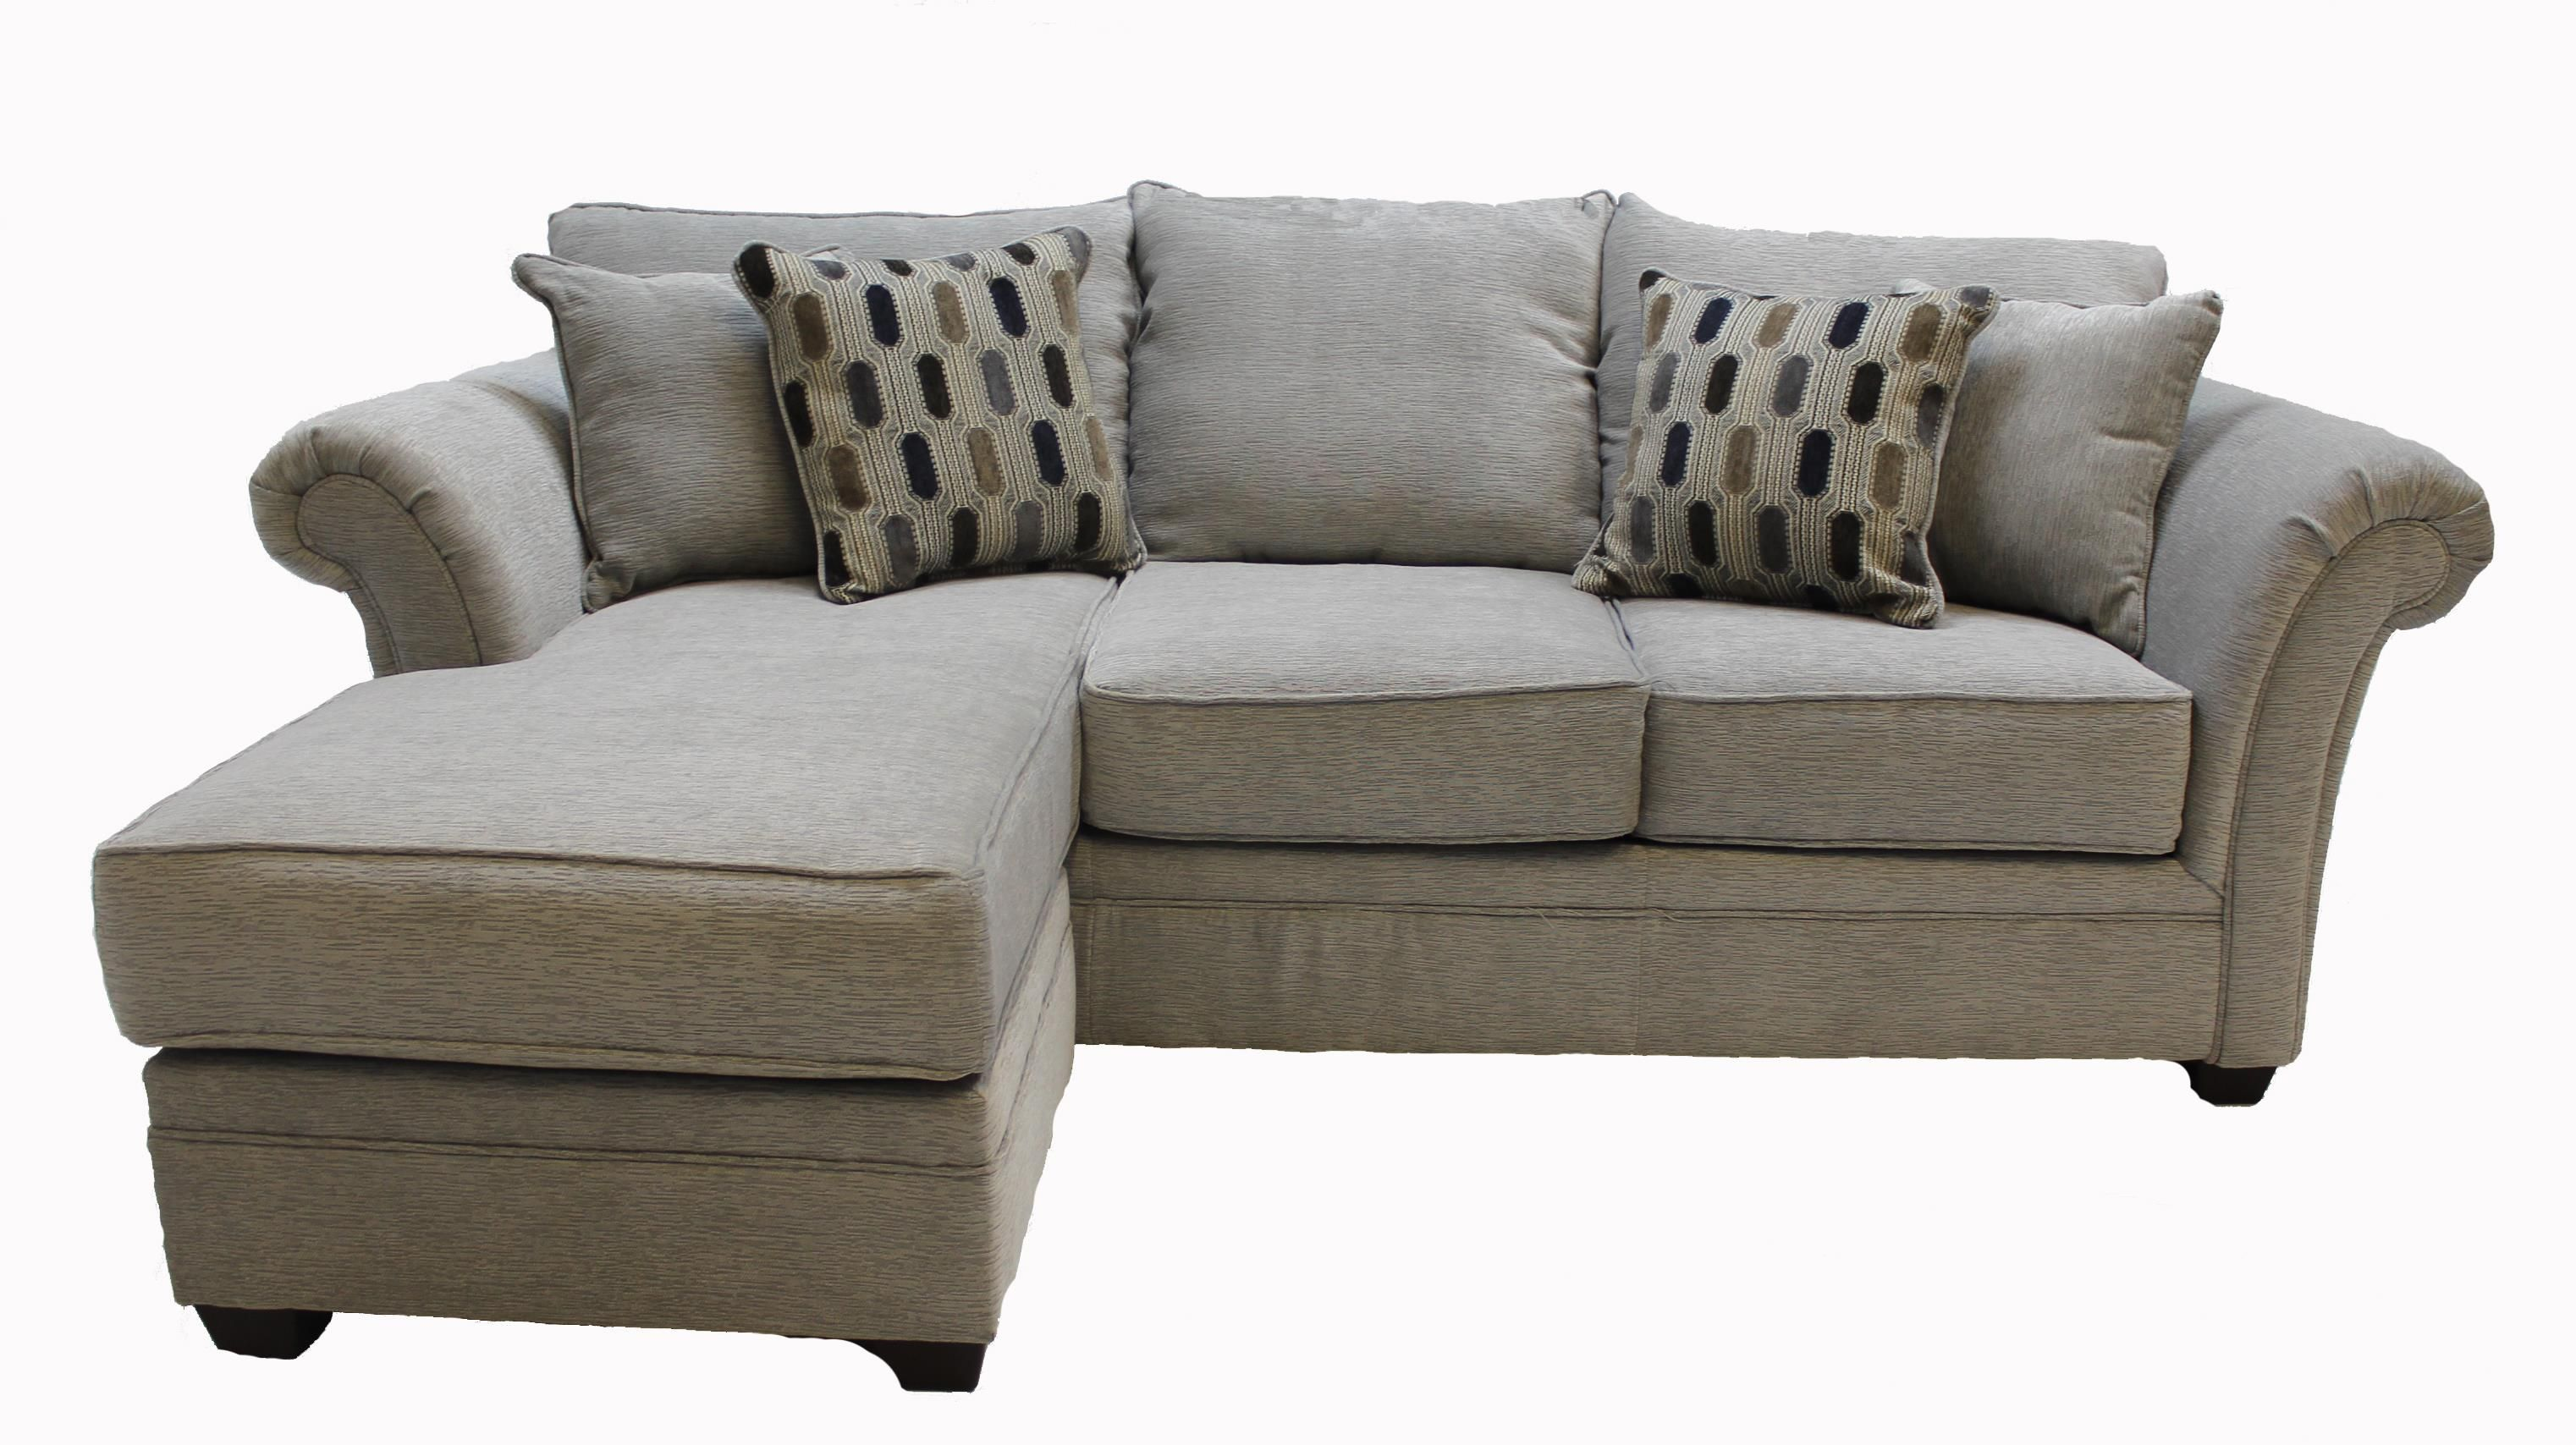 Awesome 5125 Sofa By Serta Upholstery By Hughes New House Sofa Ocoug Best Dining Table And Chair Ideas Images Ocougorg